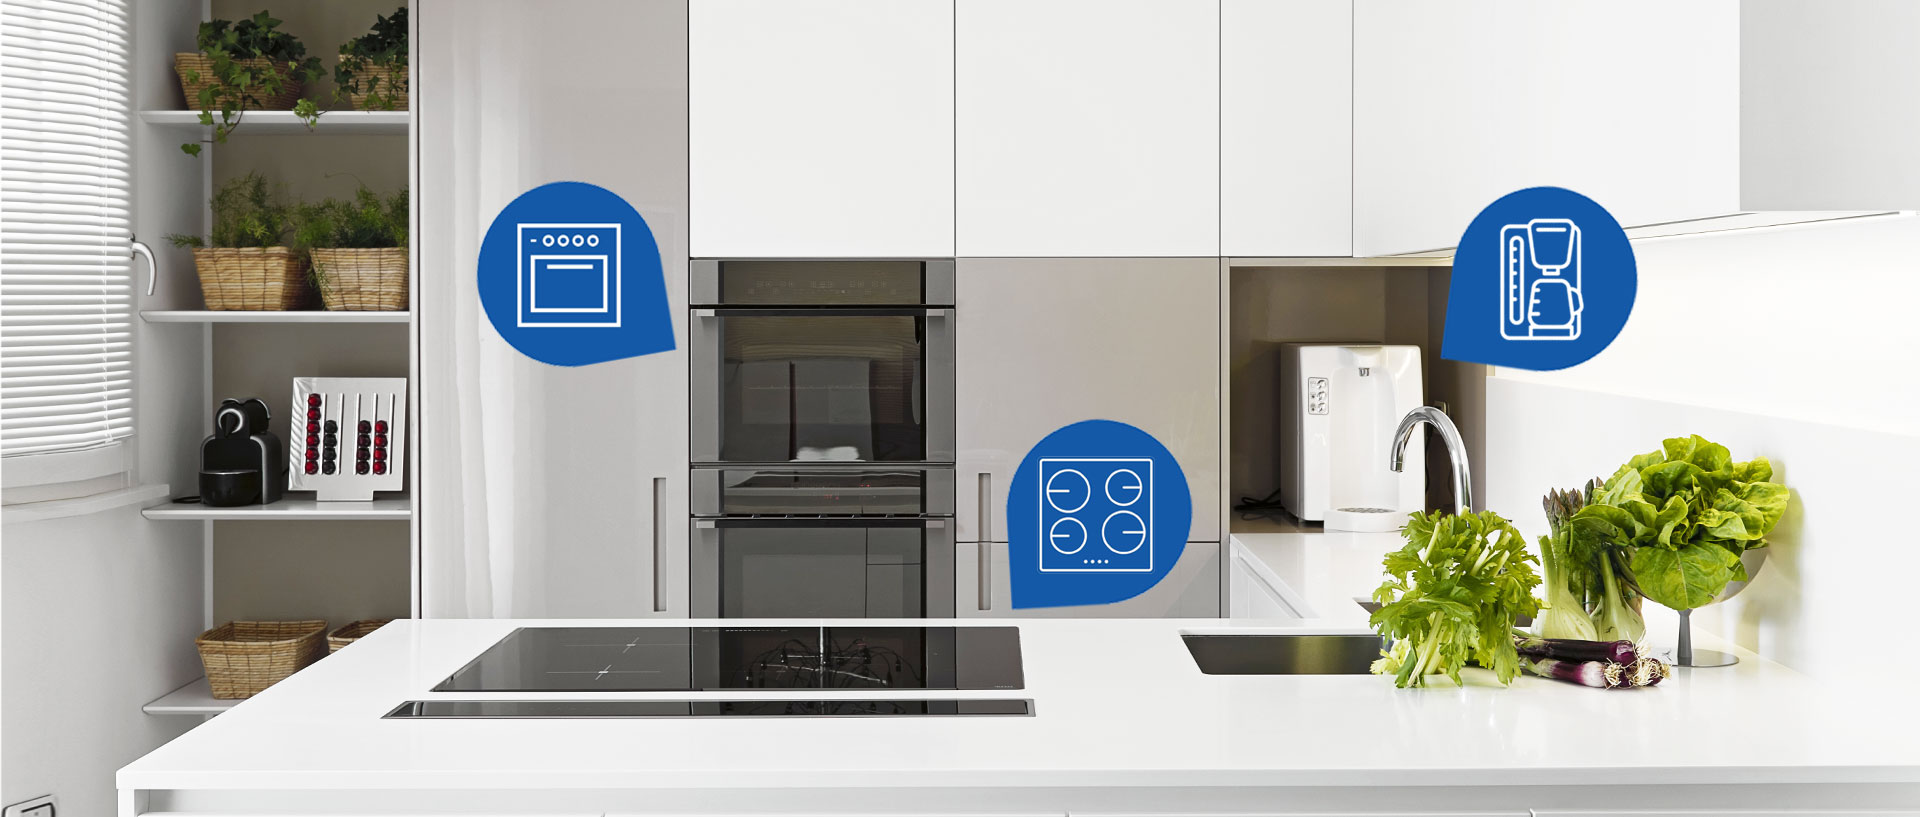 A white, minimally designed kitchen with a built-in induction cooktop, a built-in wall oven and a coffee maker.